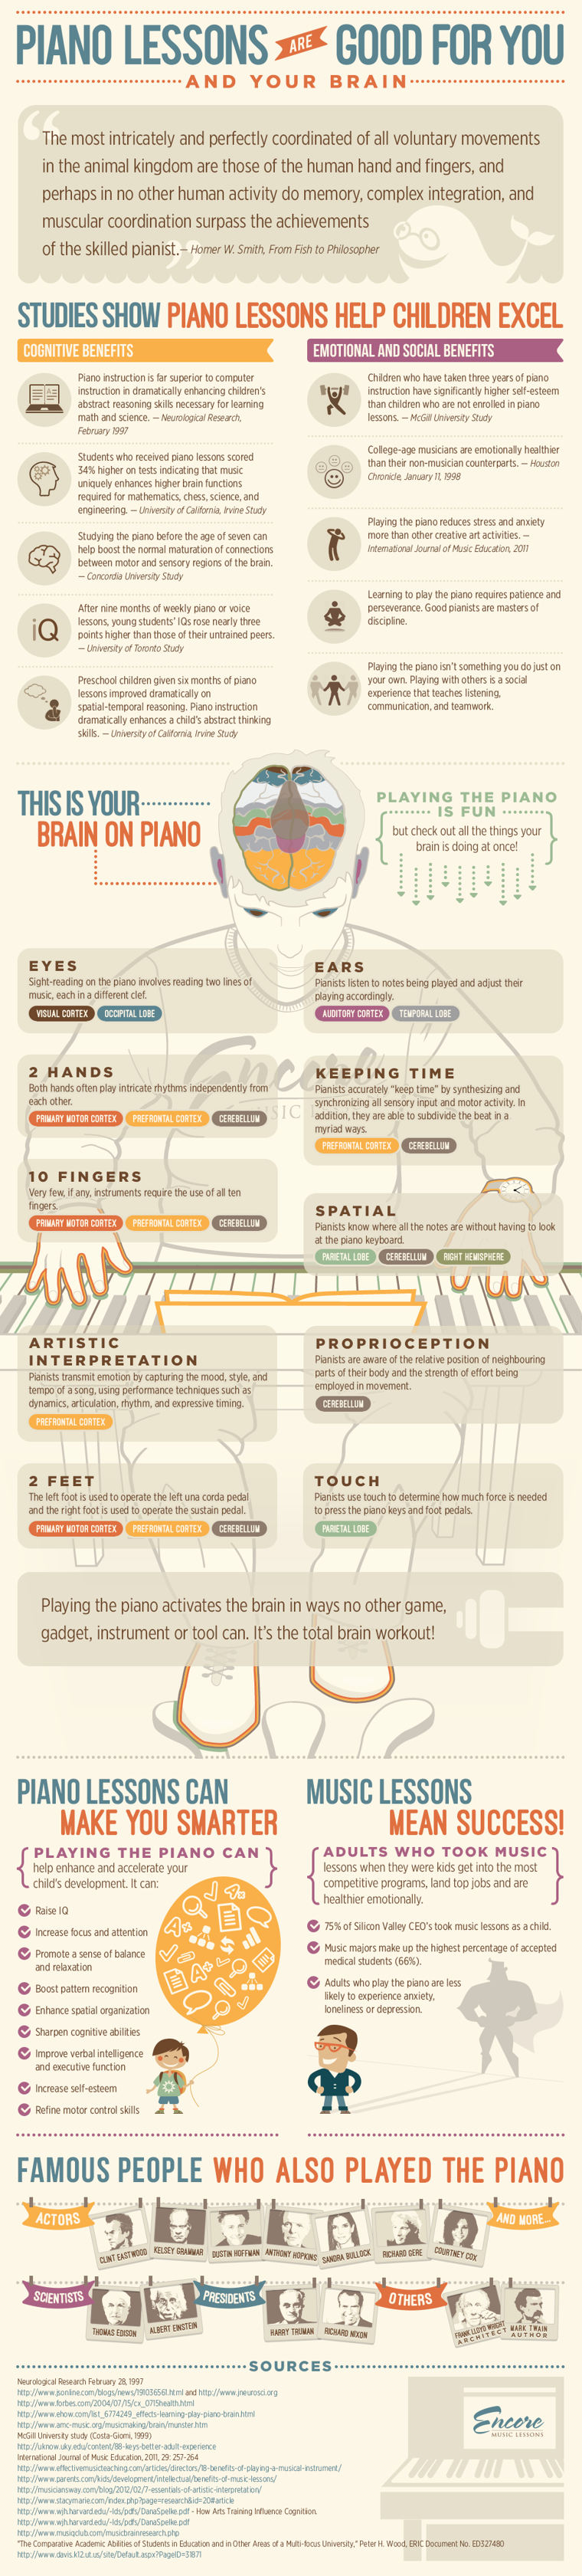 The power of music - Infographic piano lessons benefits